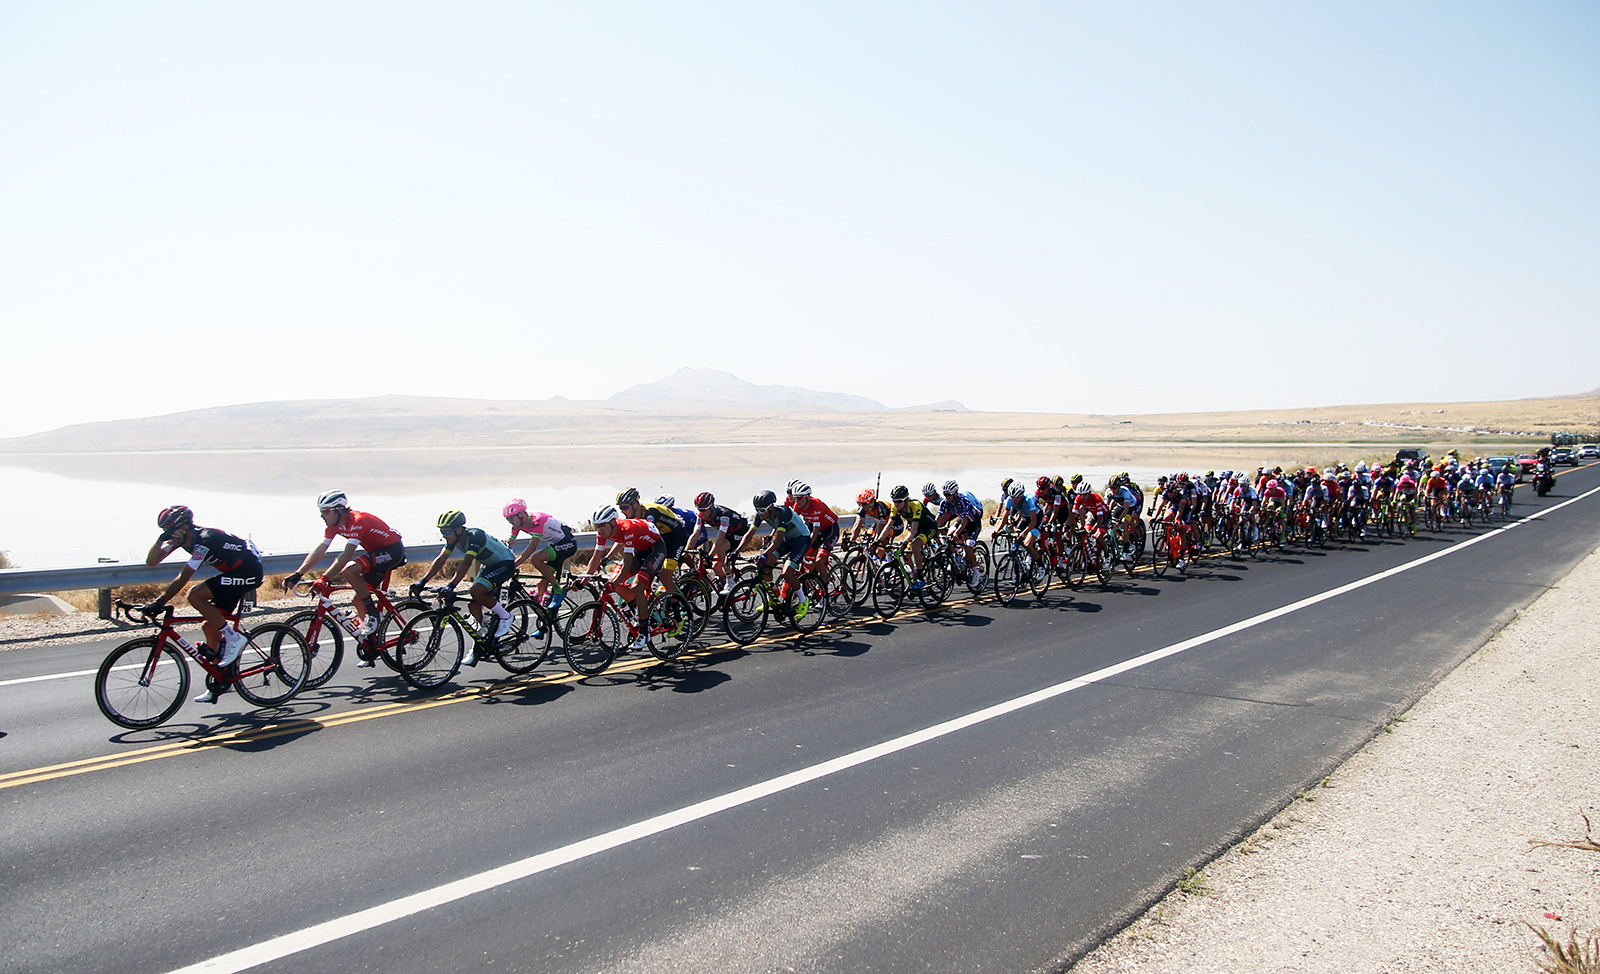 The peloton heads to the Bountiful Benches from Antelope Island. 2018 Tour of Utah Stage 3, August 8, 2018, Layton, Utah. Photo by Cathy Fegan-Kim, cottonsoxphotography.net